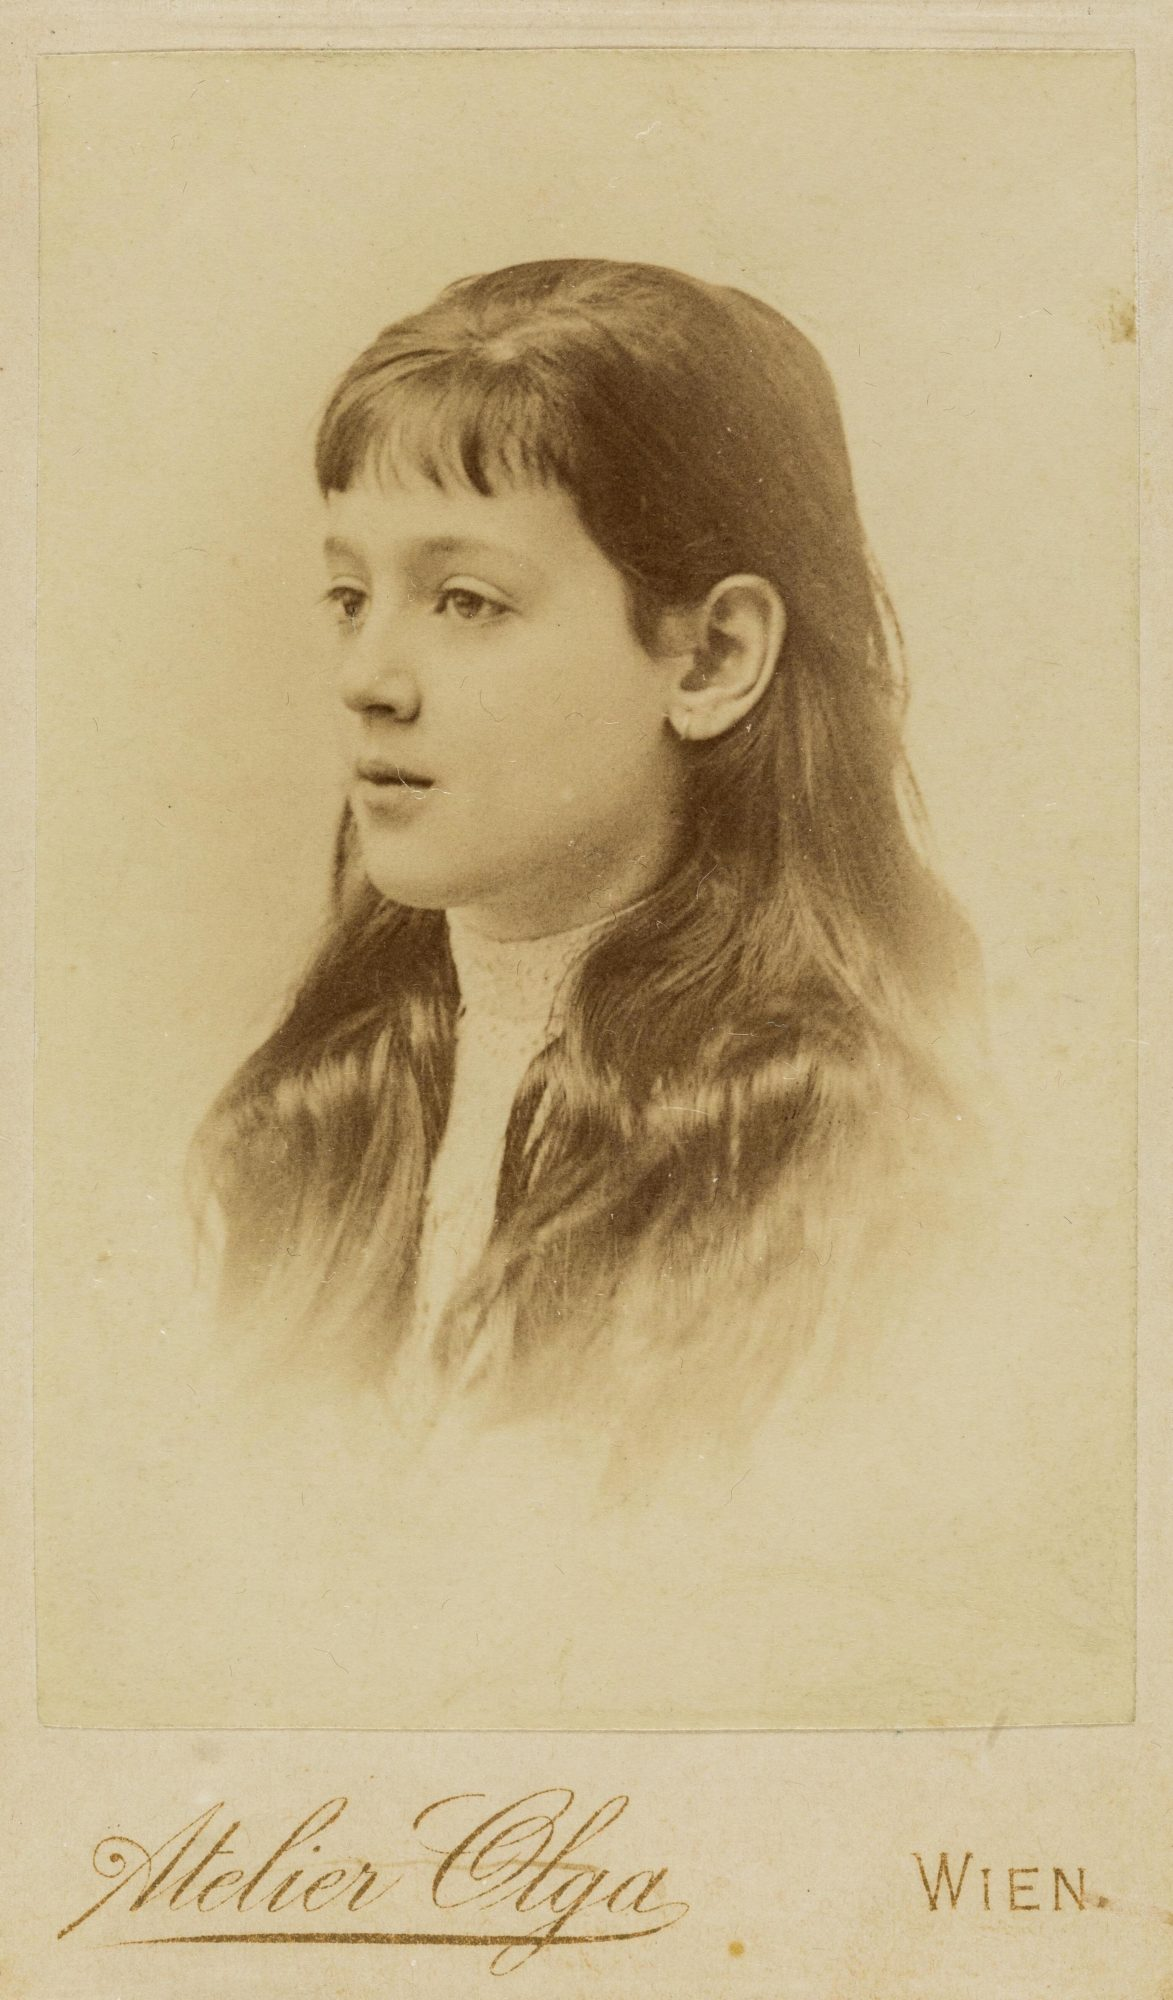 Photograph of Melanie Klein aged 7 or 8